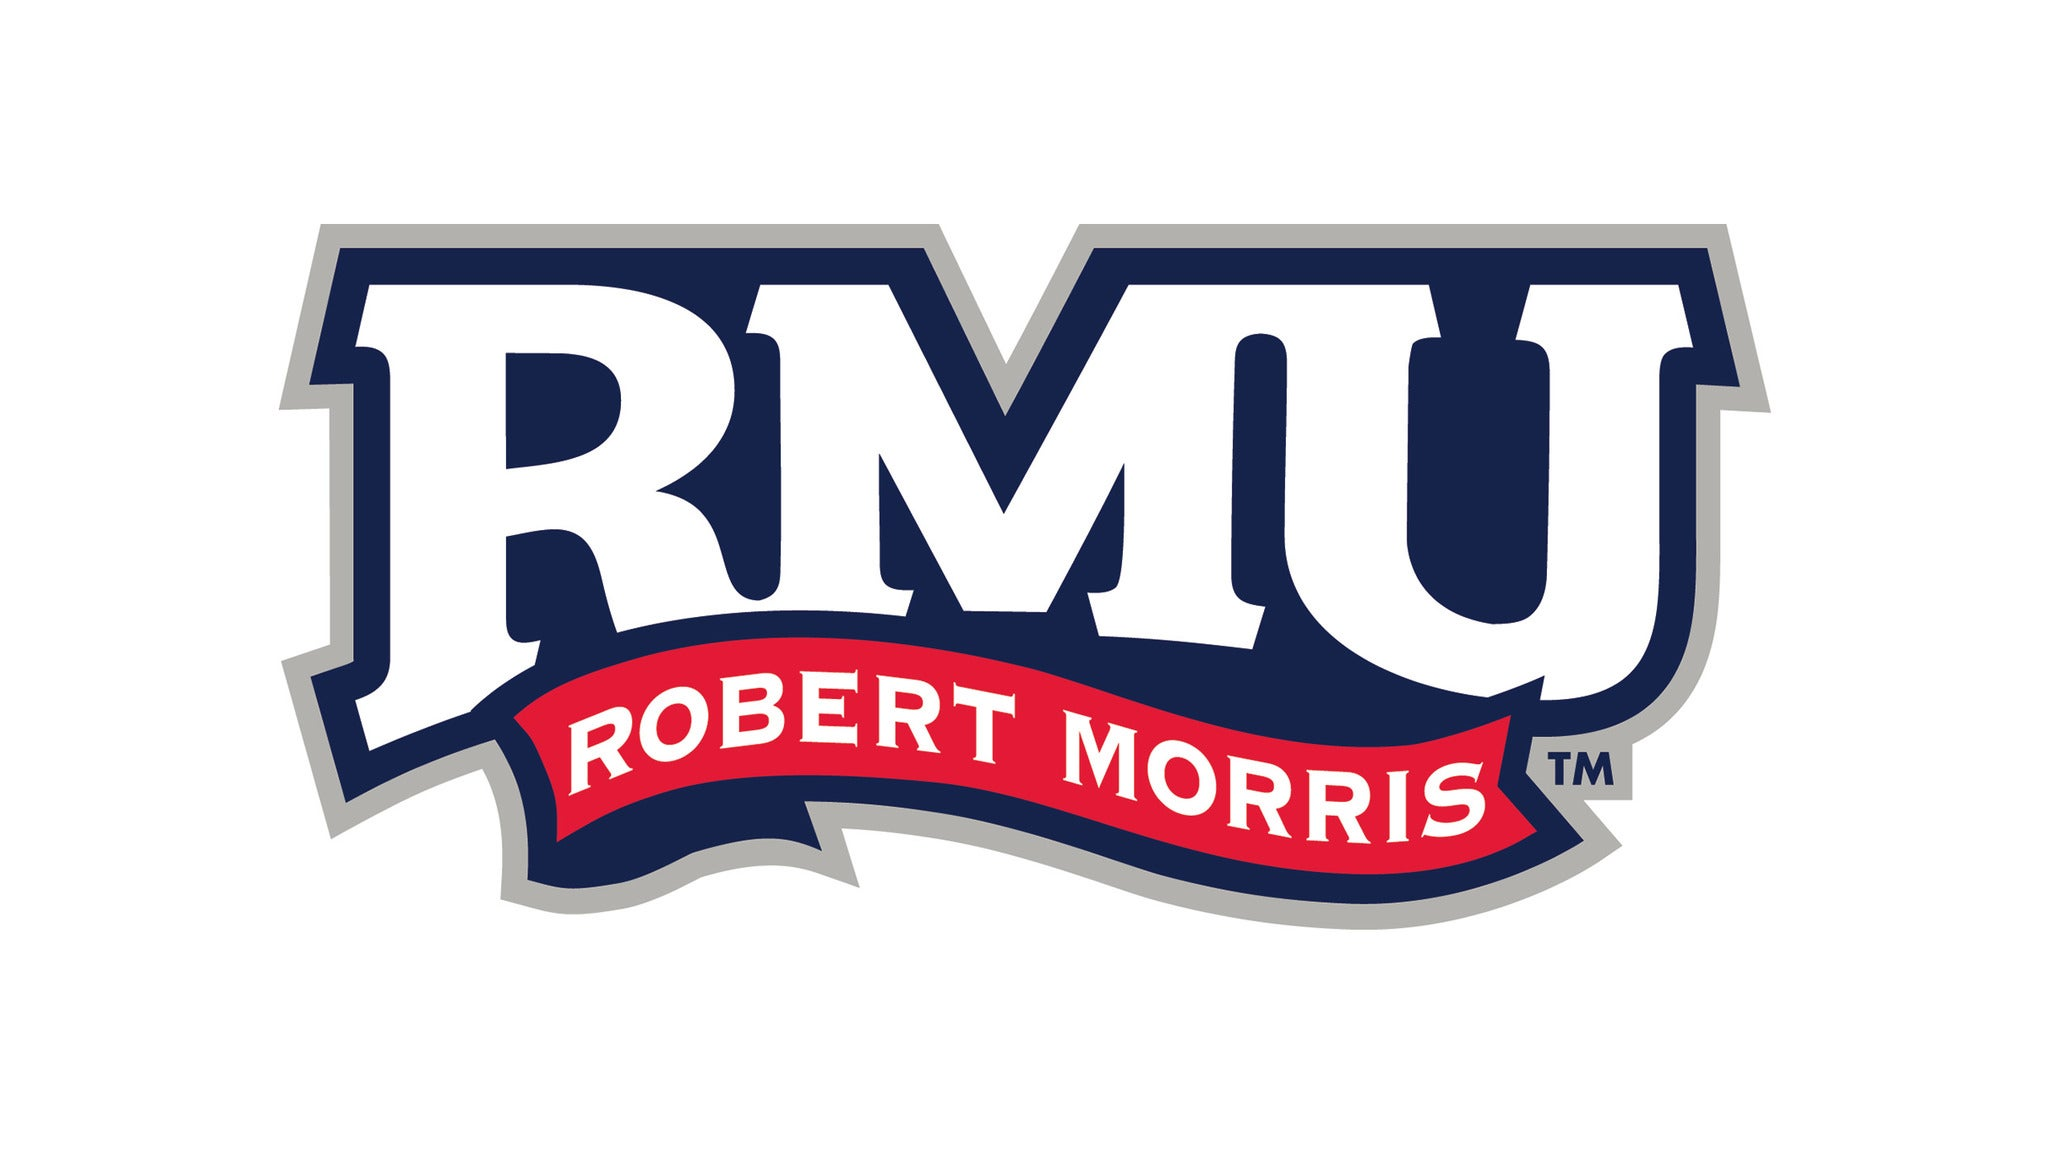 Robert Morris Womens Hockey v Syracuse at Colonial's Arena - Pittsburgh, PA 15225